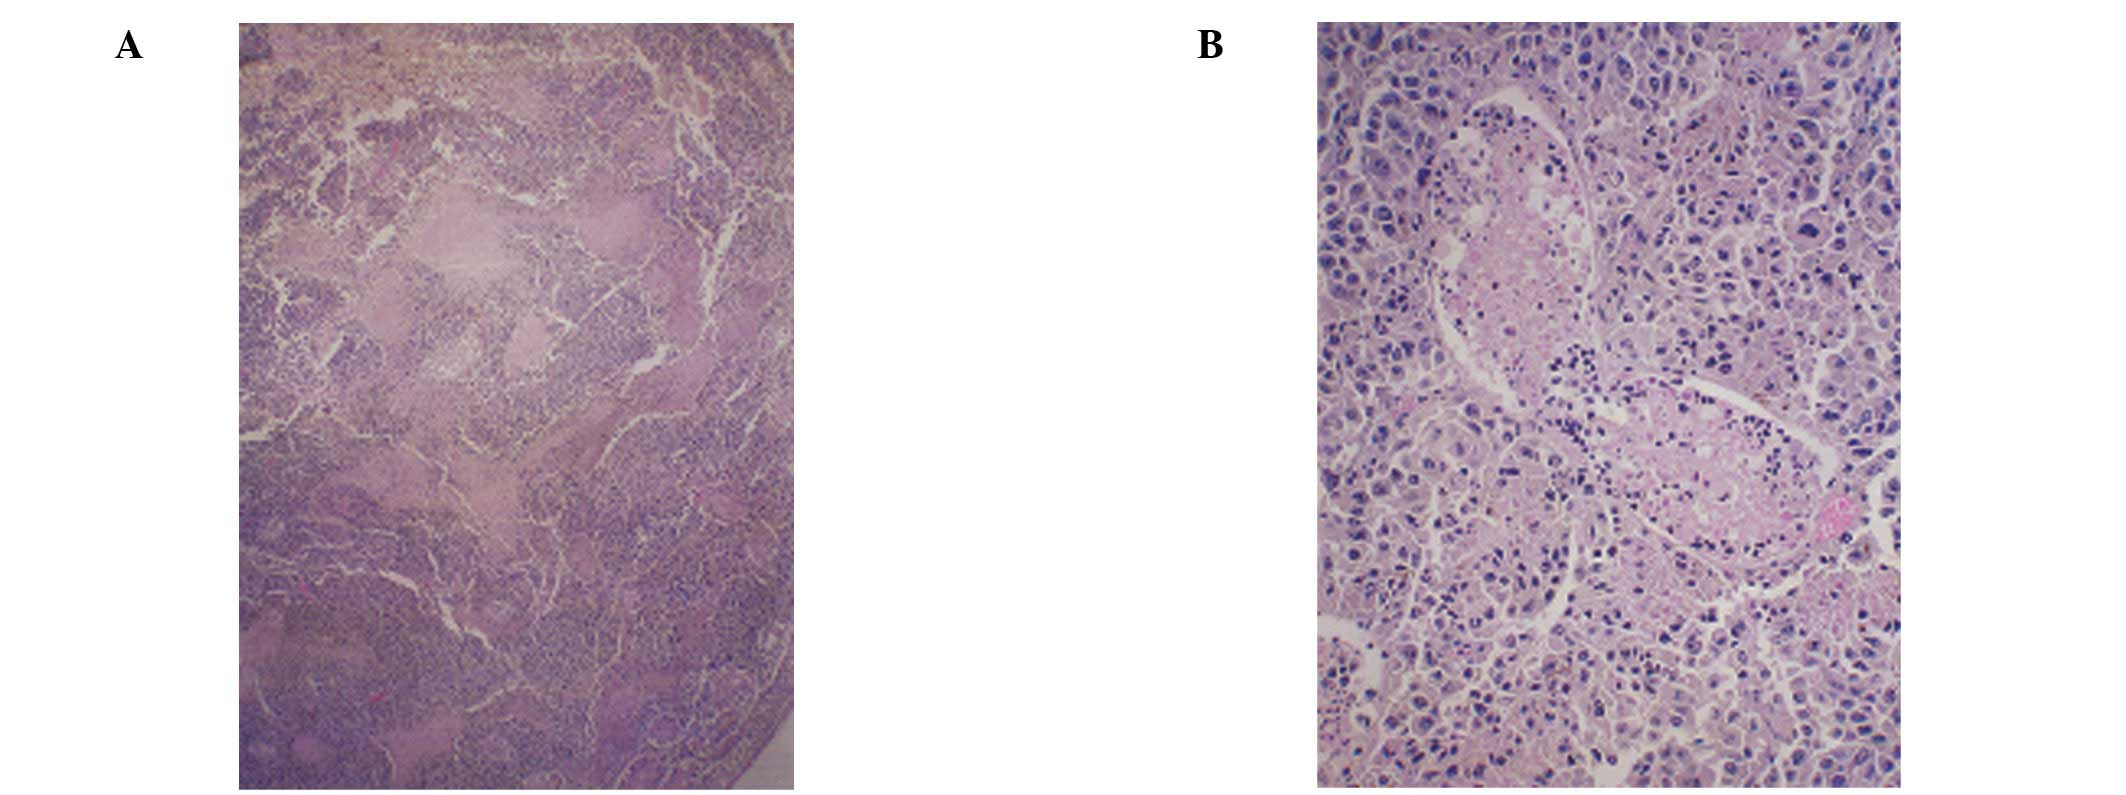 Suppression Of Metastasis Of Intratesticular Inoculation Of B16fo